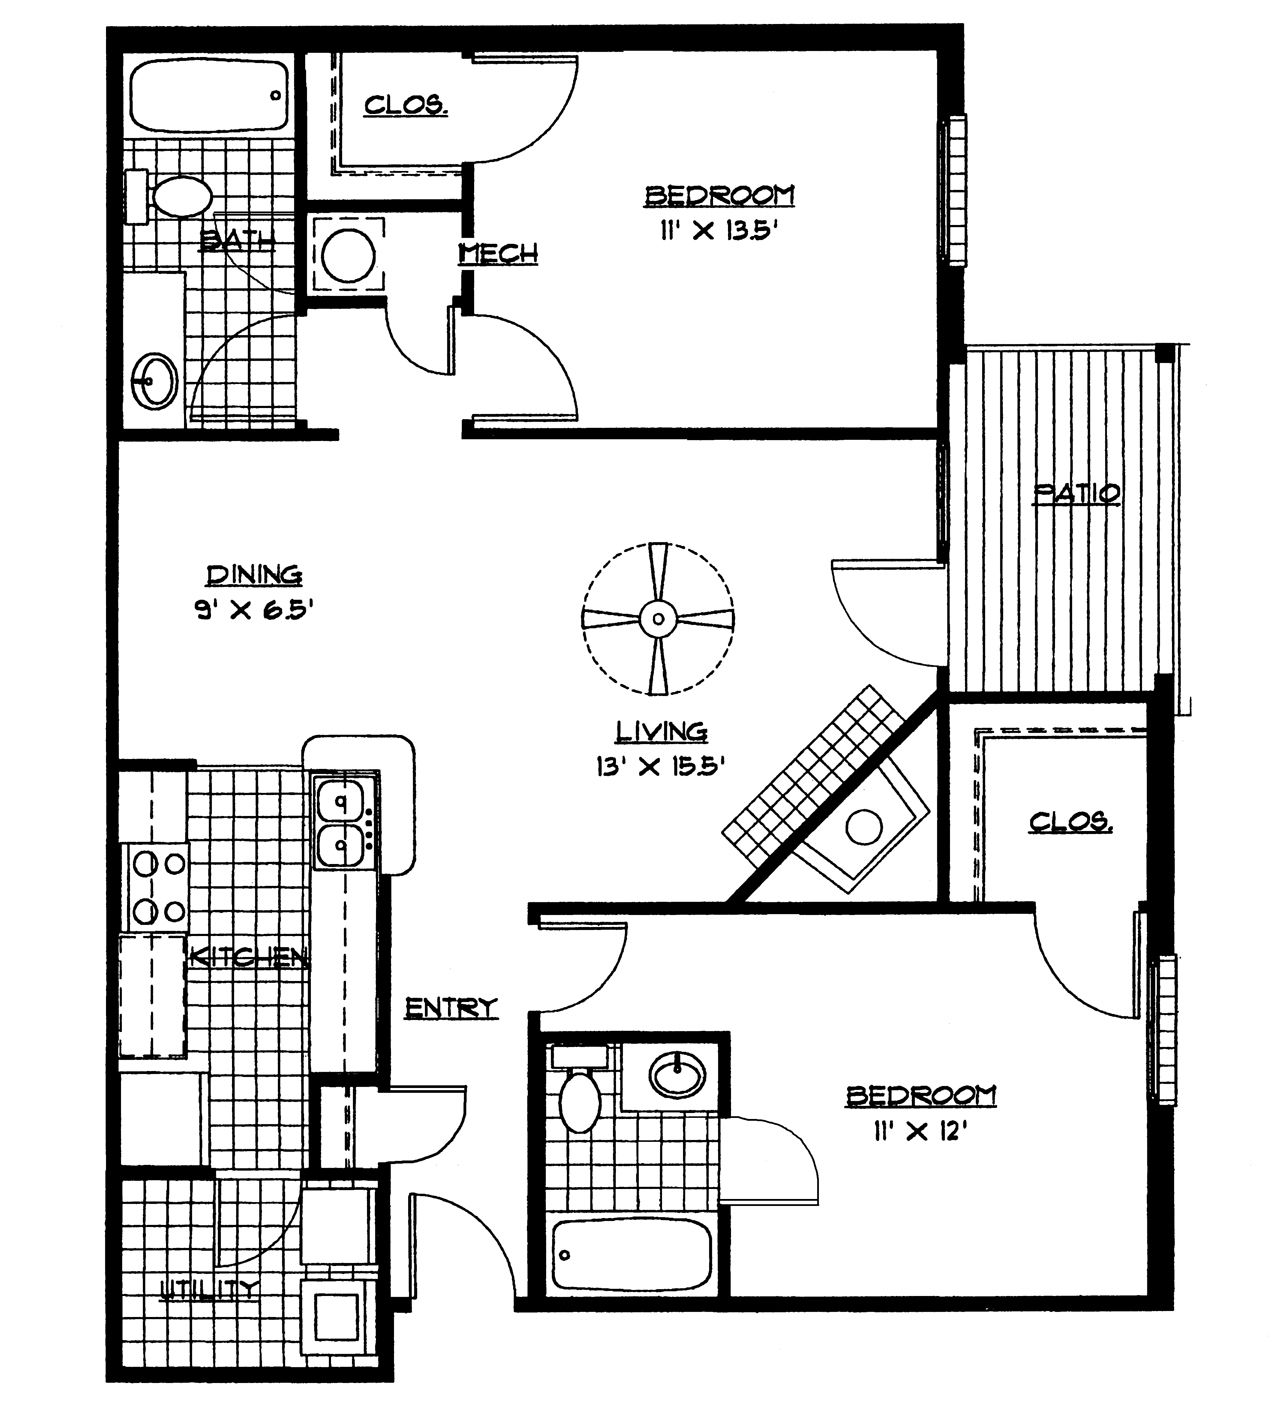 Small house floor plans 2 bedrooms bedroom floor plan Two bedroom floor plans